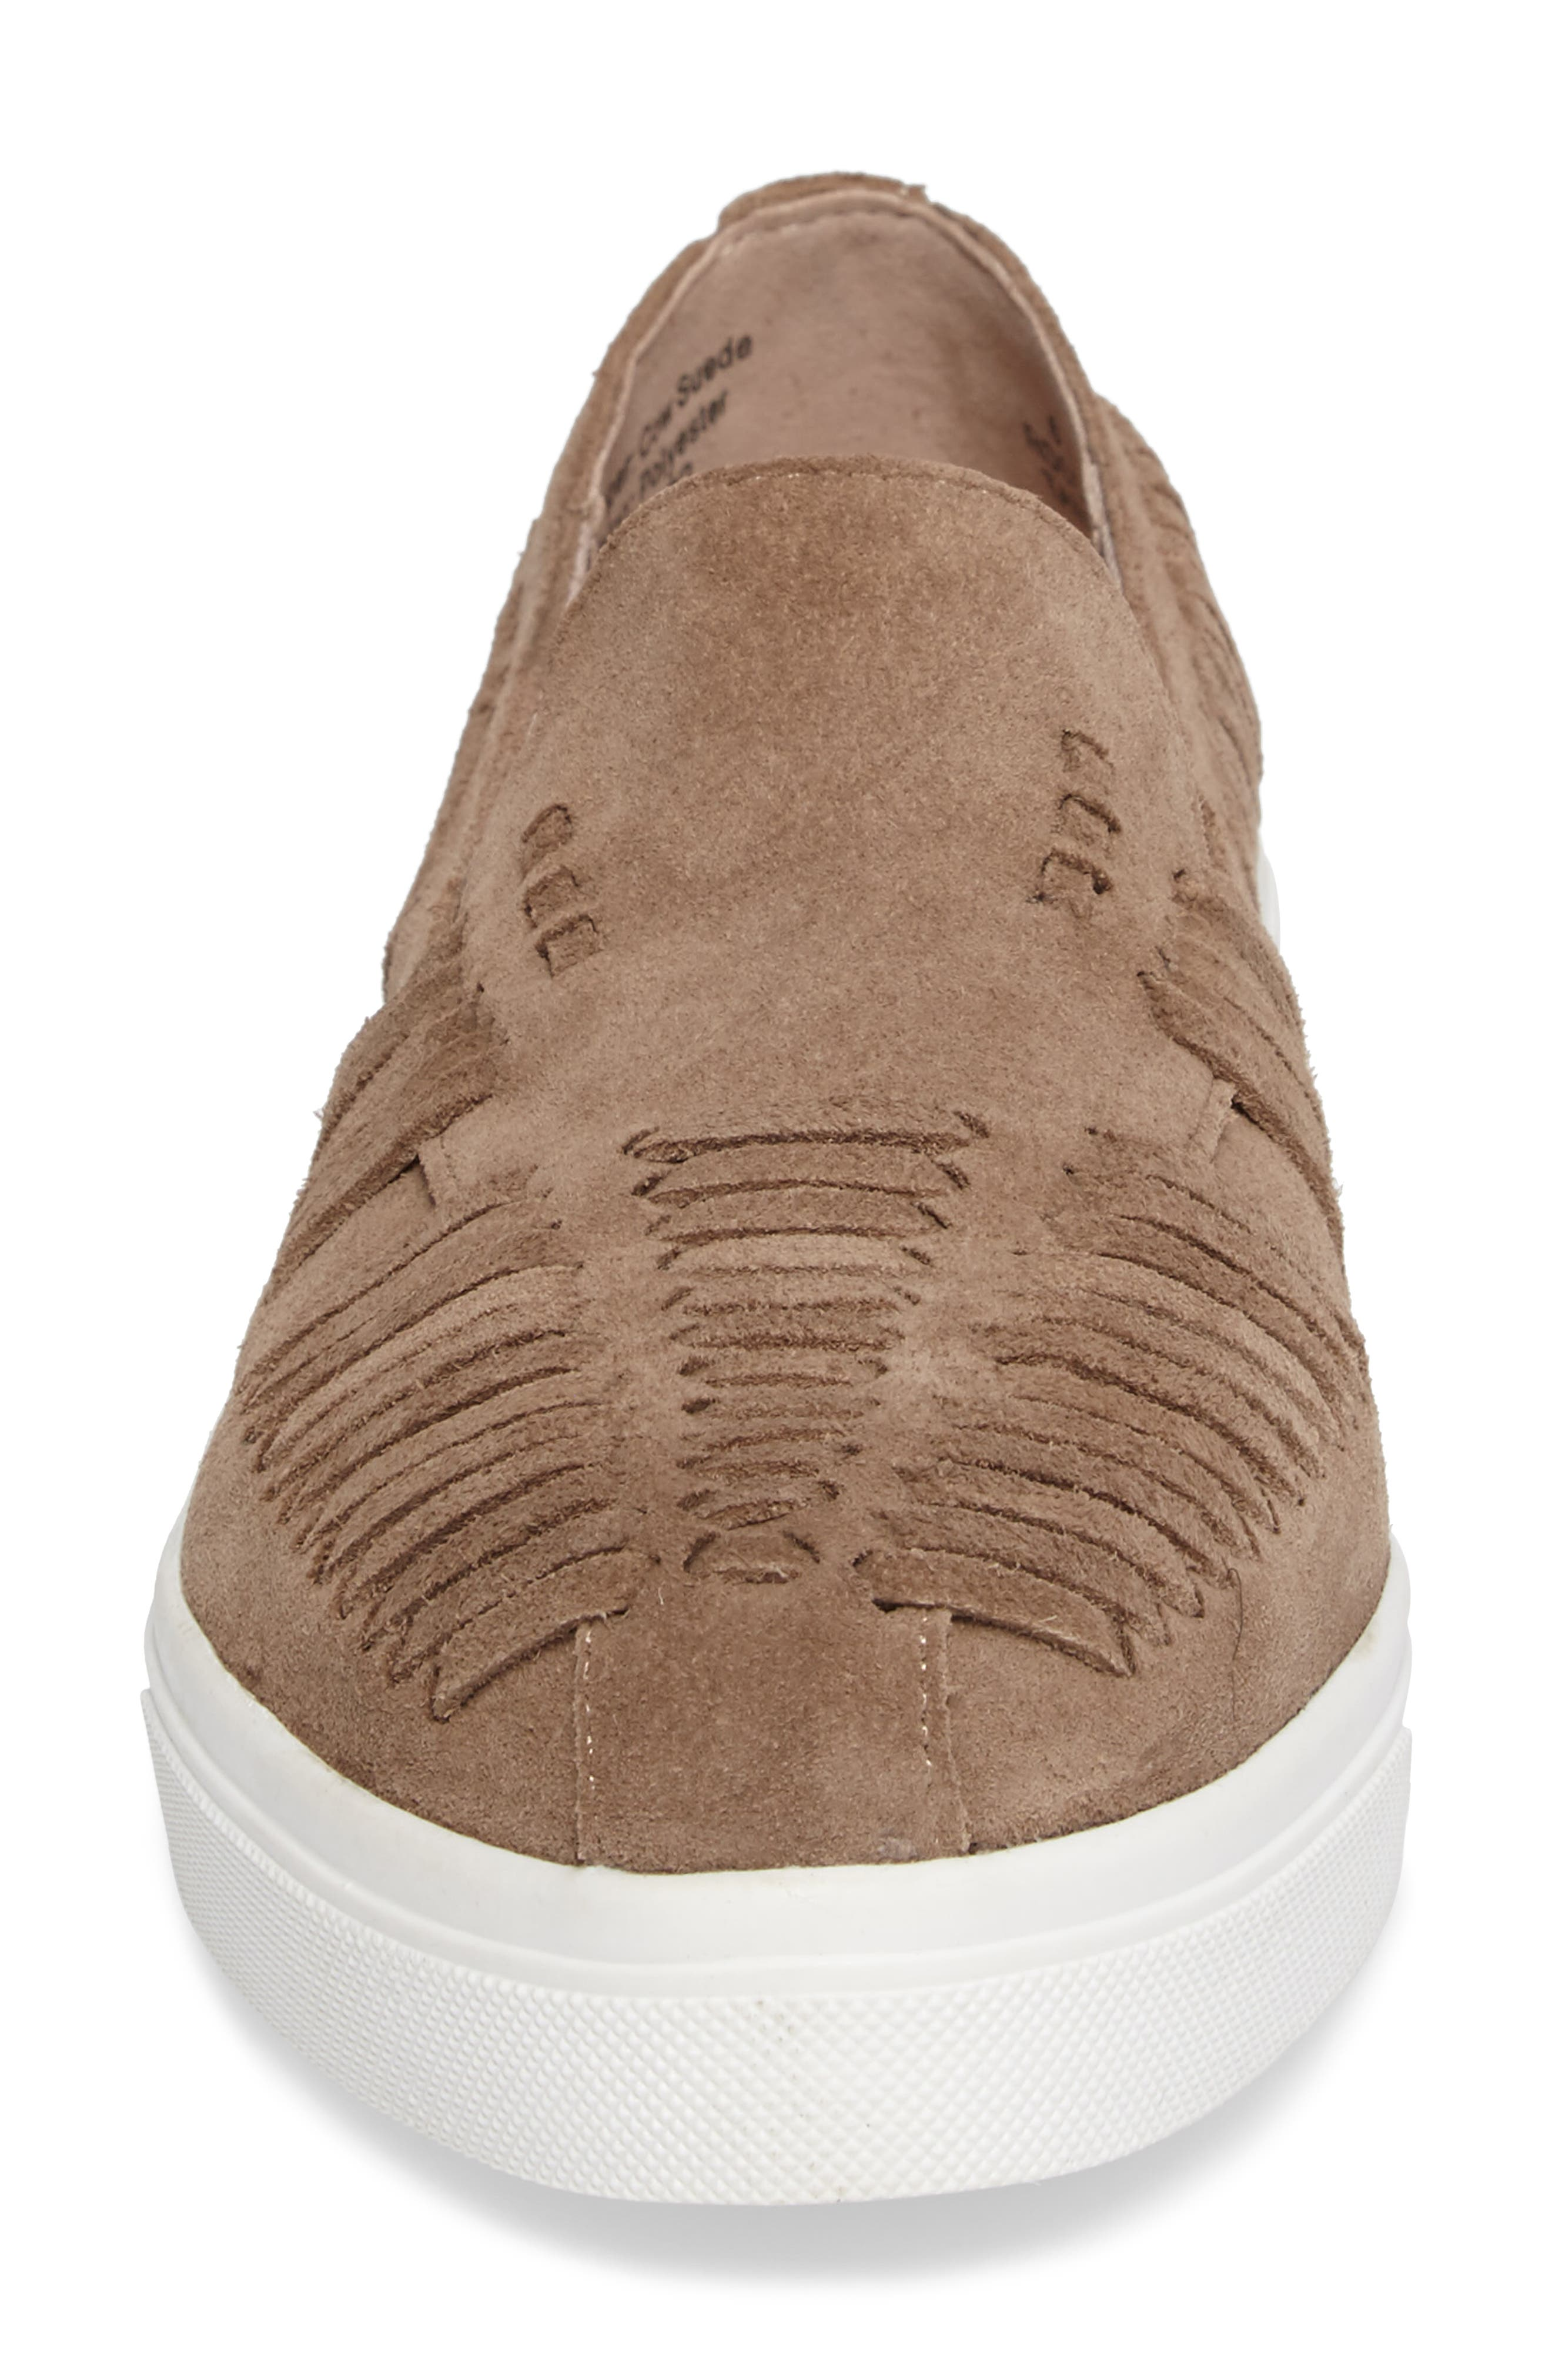 Rocco Woven Slip-On Sneaker,                             Alternate thumbnail 4, color,                             Taupe Suede